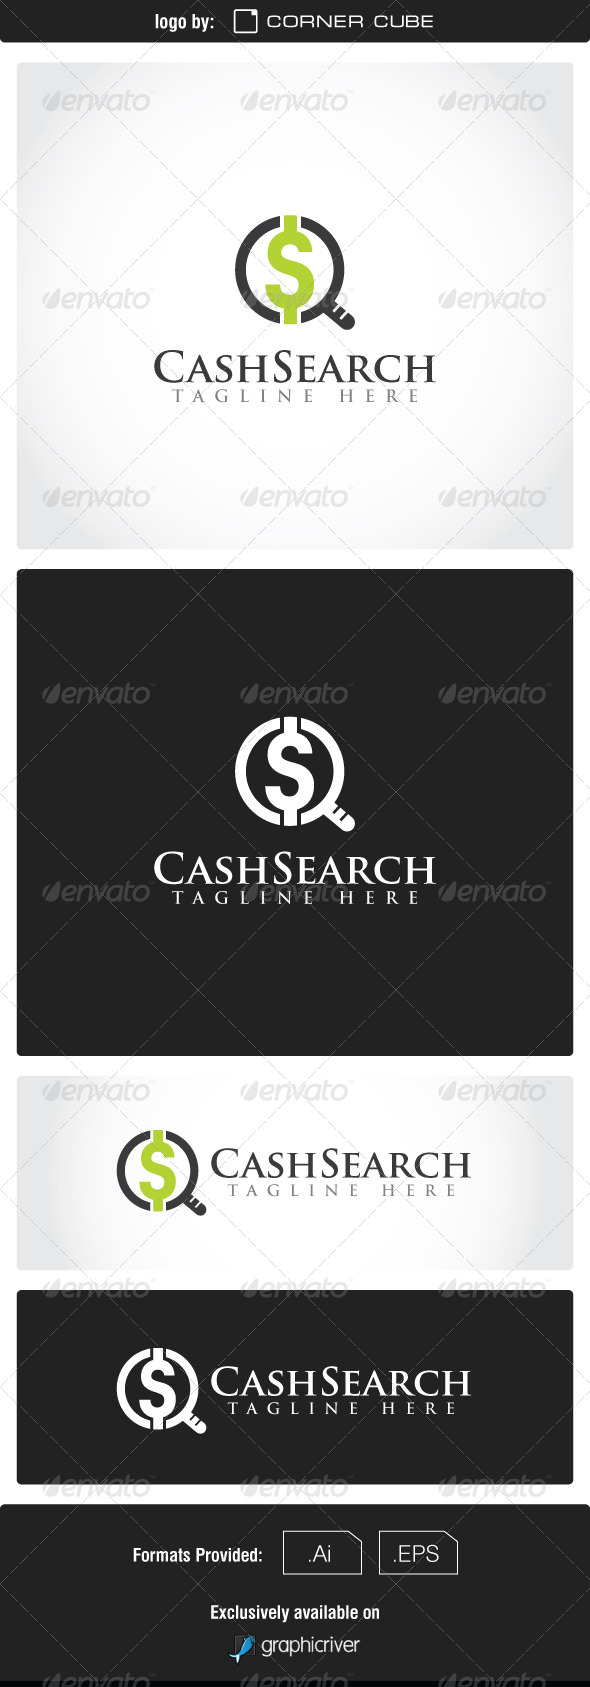 GraphicRiver Cash Search Logo 7420807